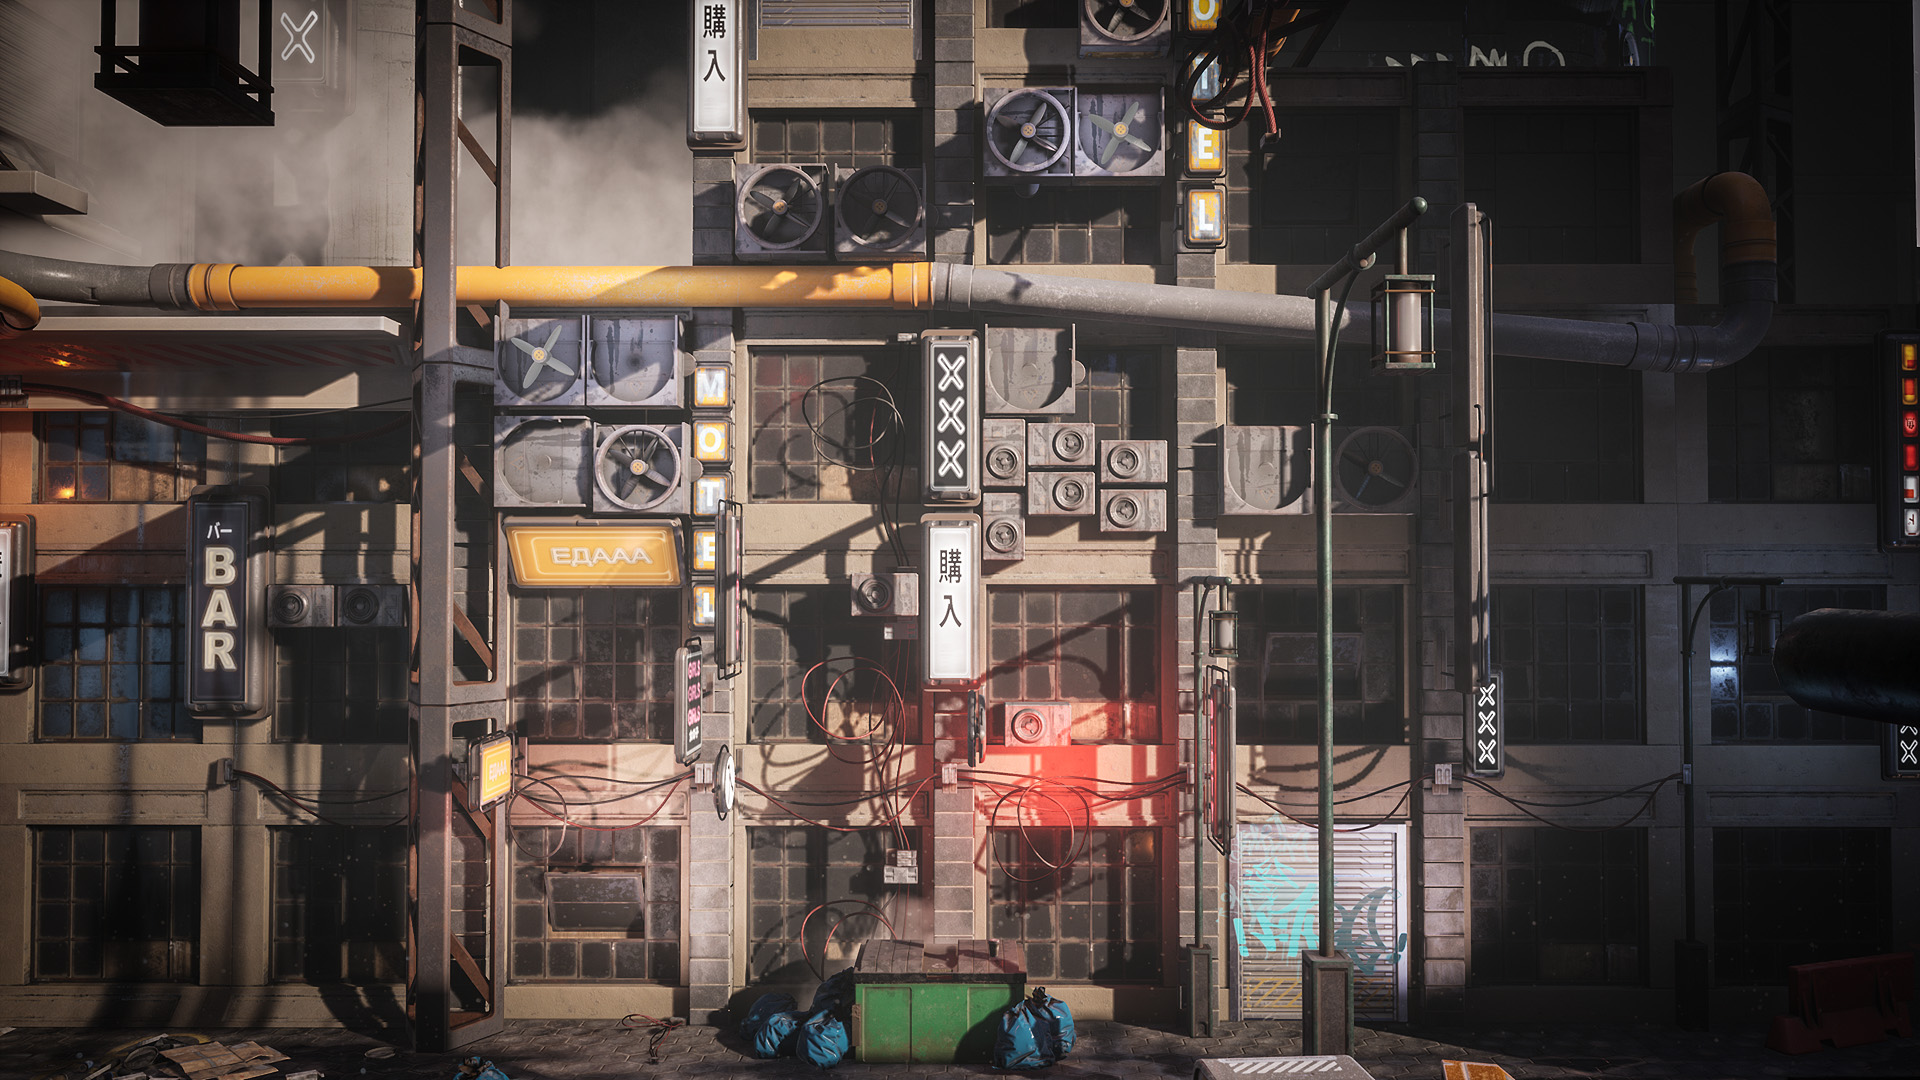 Cyberpunk Environment Kitbash Set by Denys Rutkovskyi in